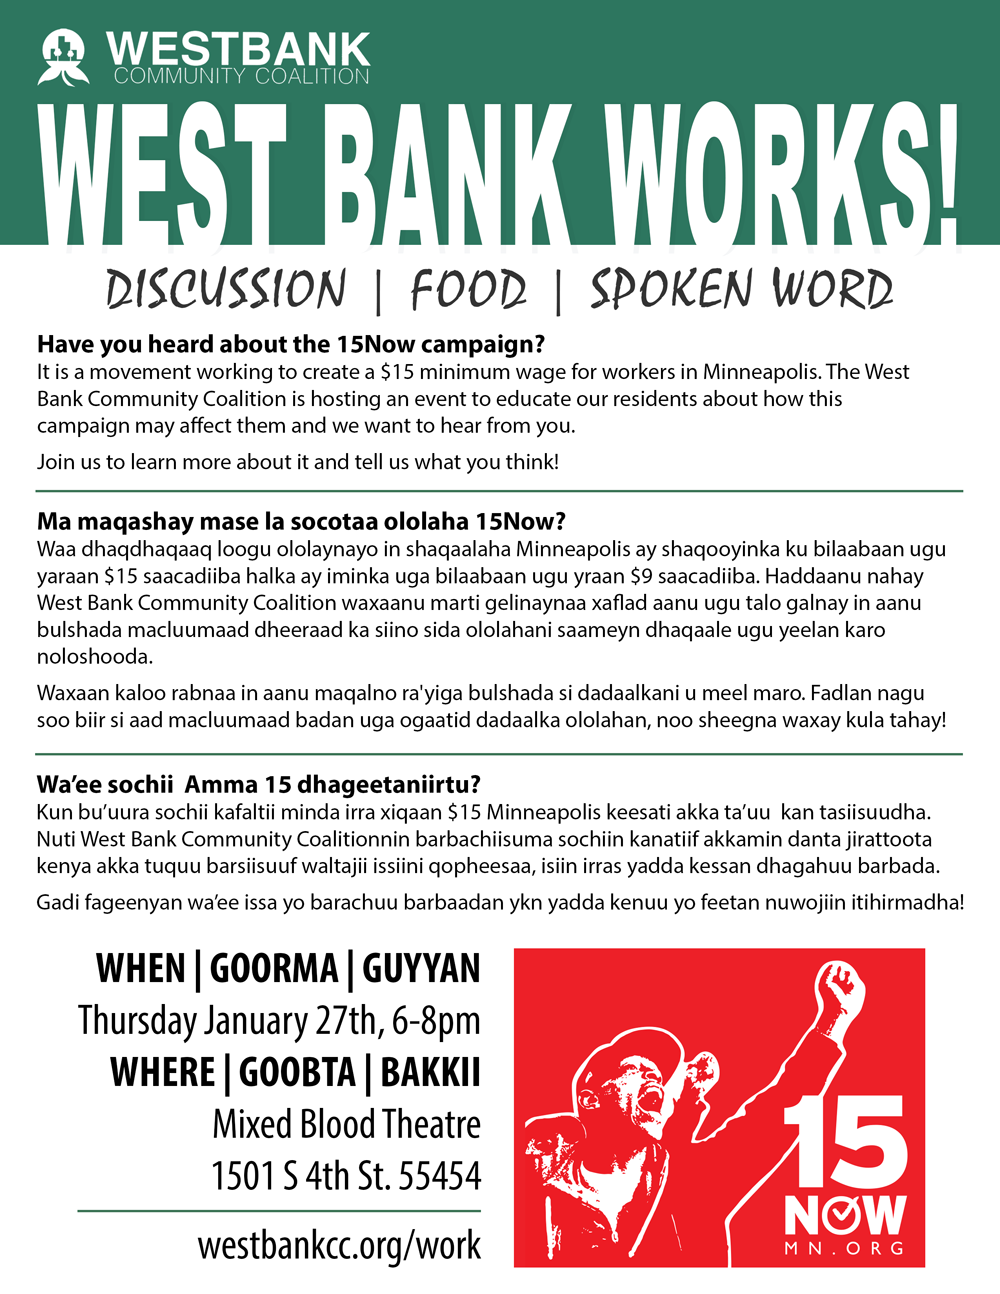 West Bank Works! Community Discussion